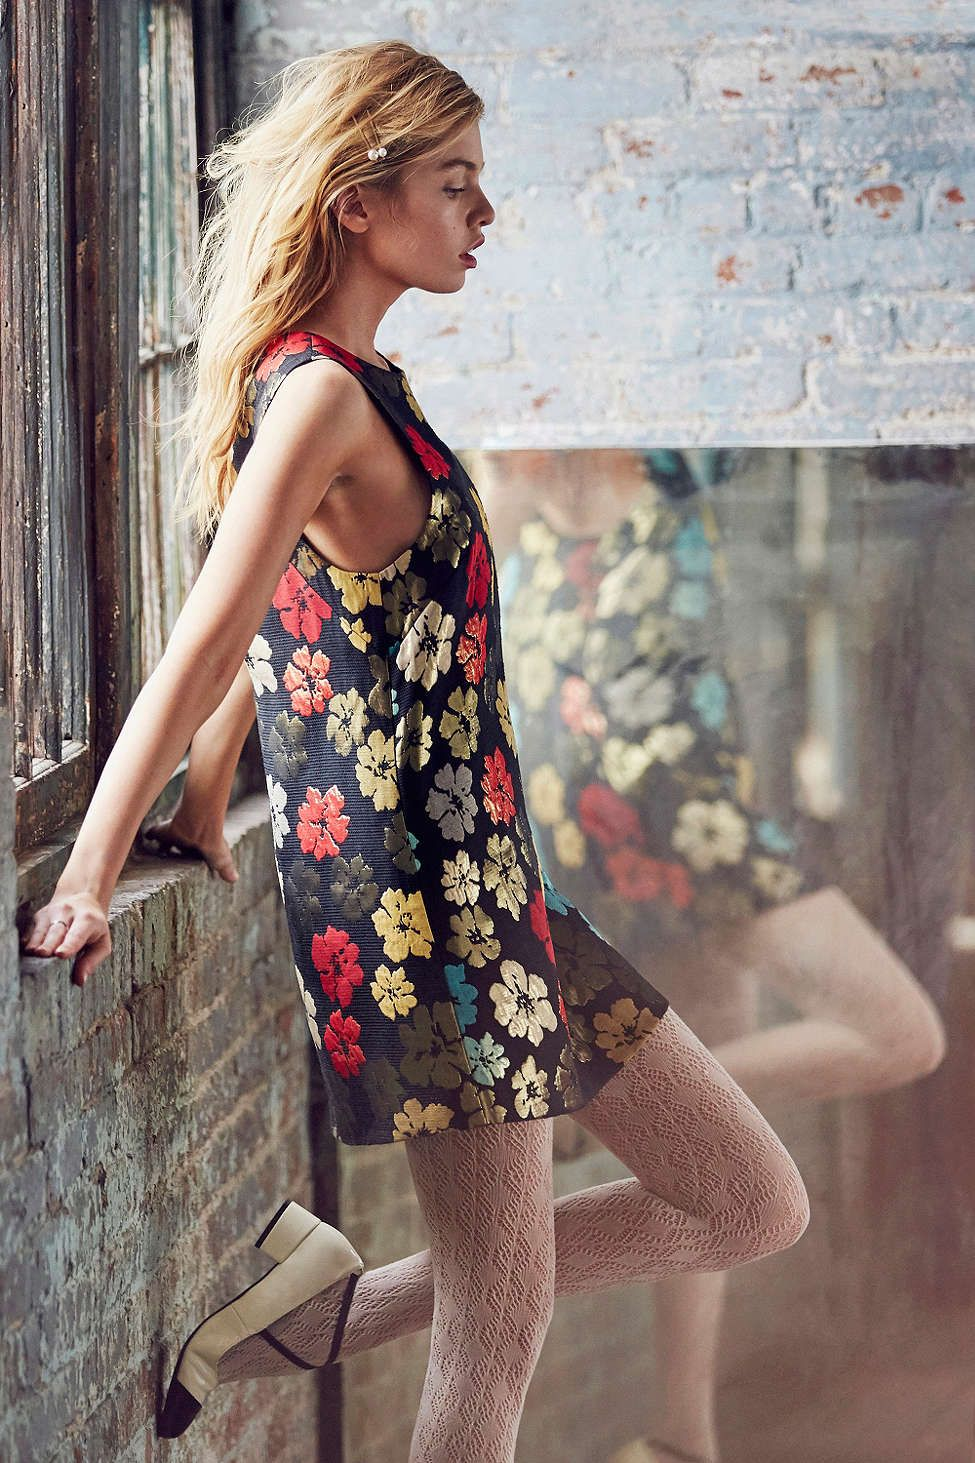 Urban outfitters hosiery dream closets and casual street style